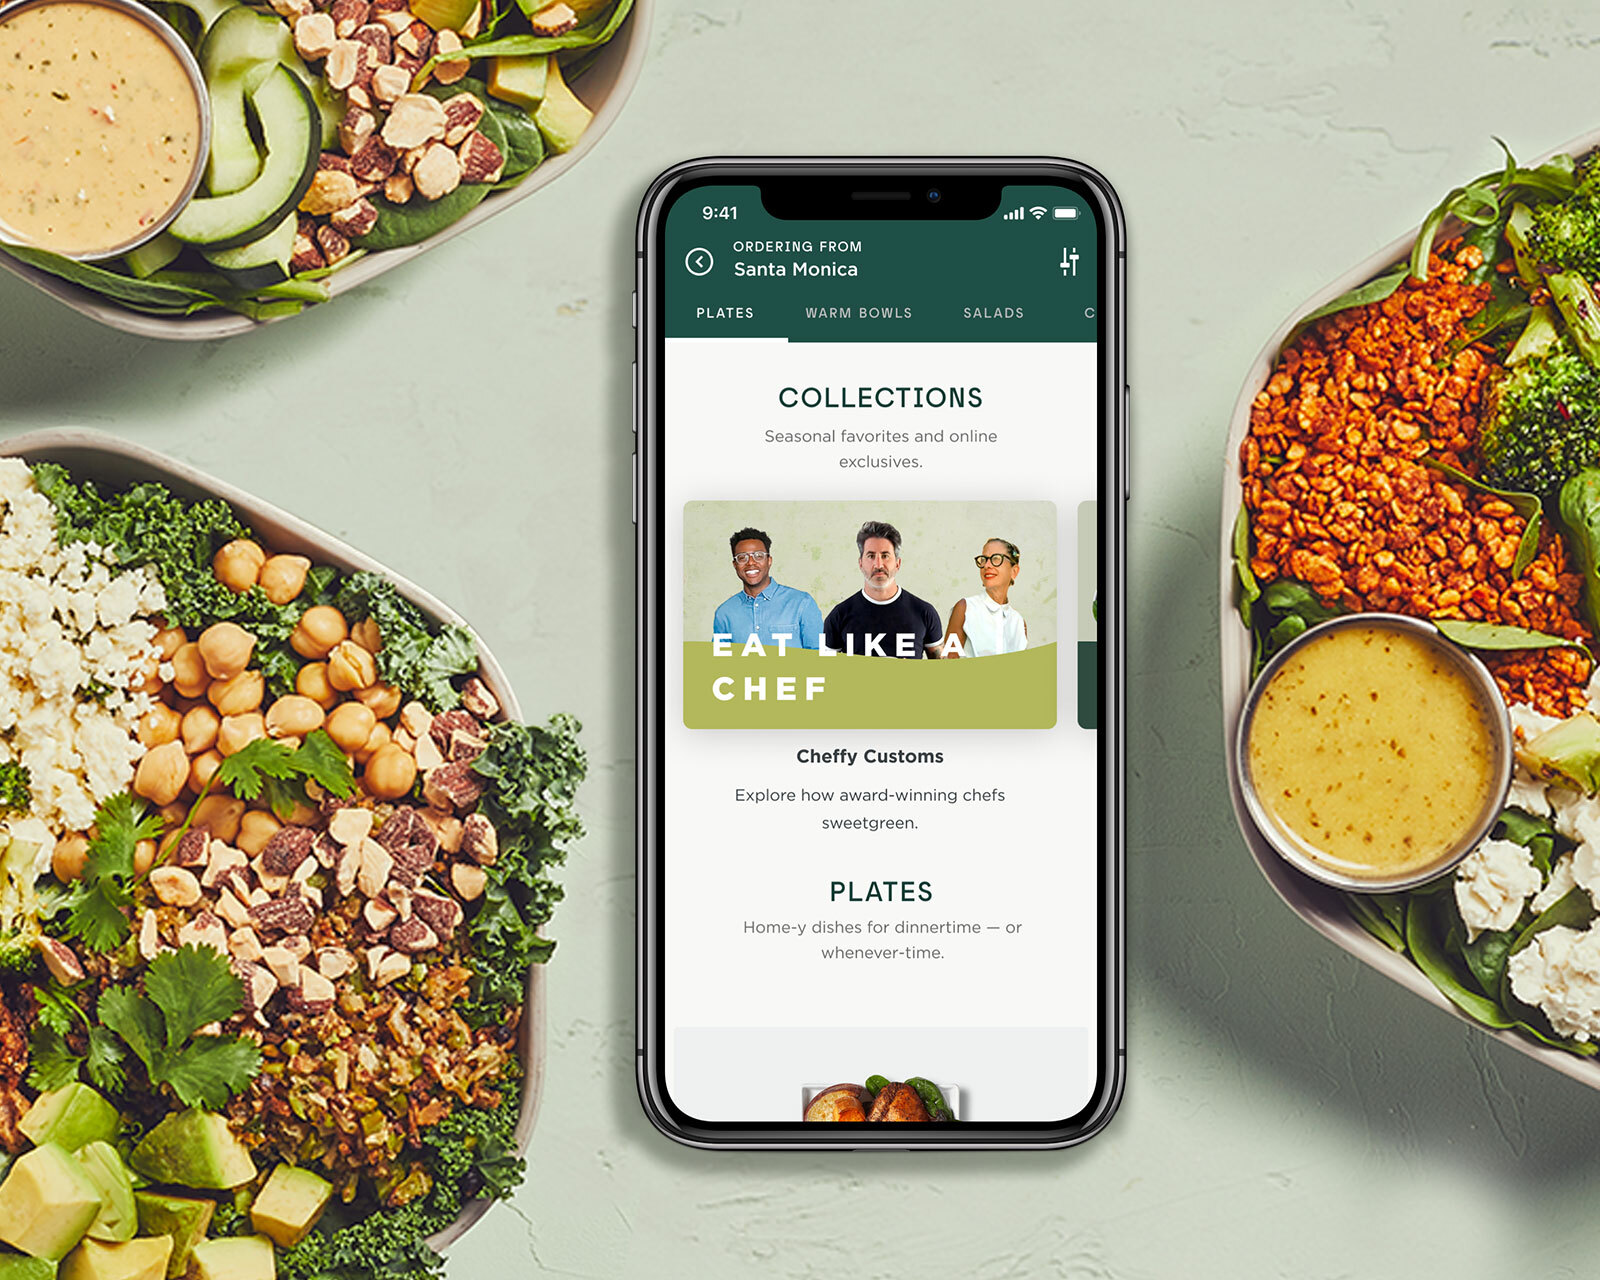 Three salad bowls arranged around a phone with the Sweetgreen app open on a white background